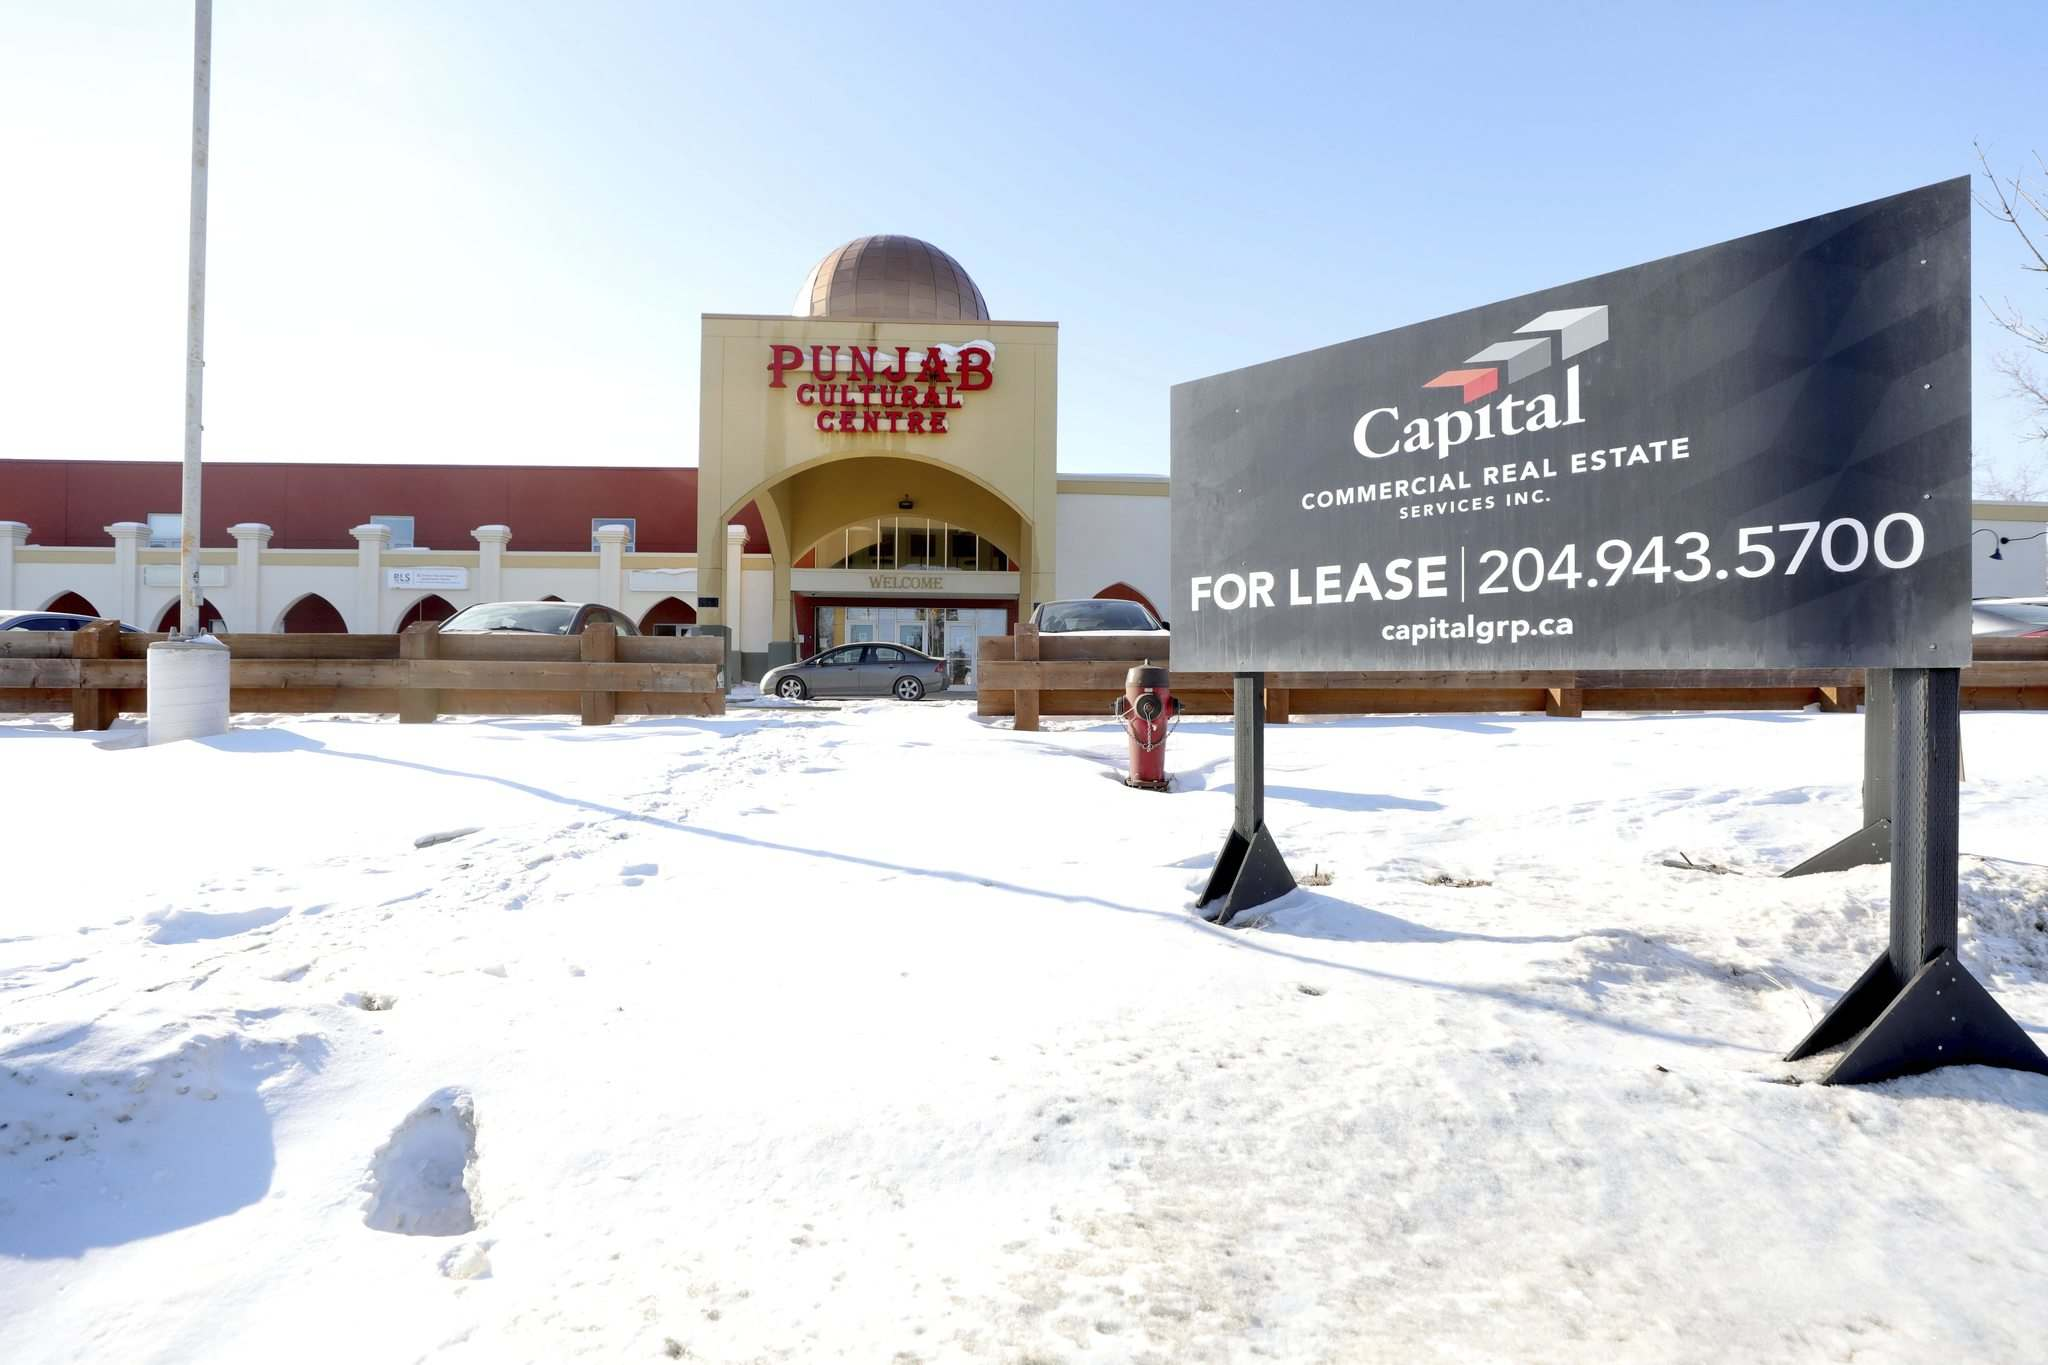 <p>The Punjab Cultural Centre at 1770 King Edward St. is looking for tenants.</p>